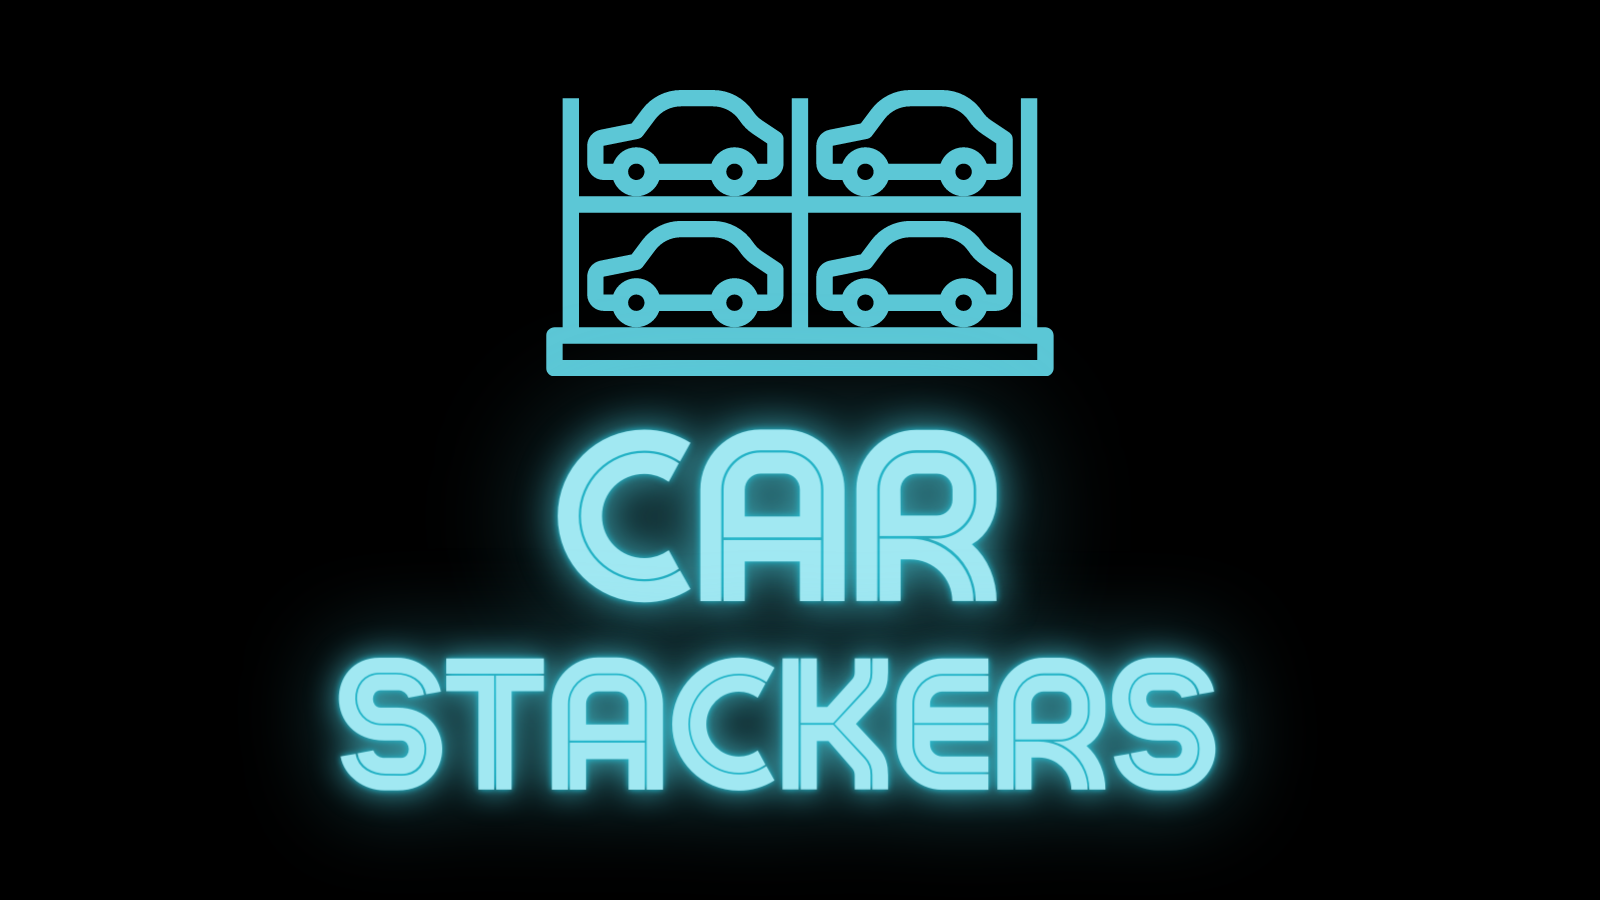 car stackers owners corporation body corporate